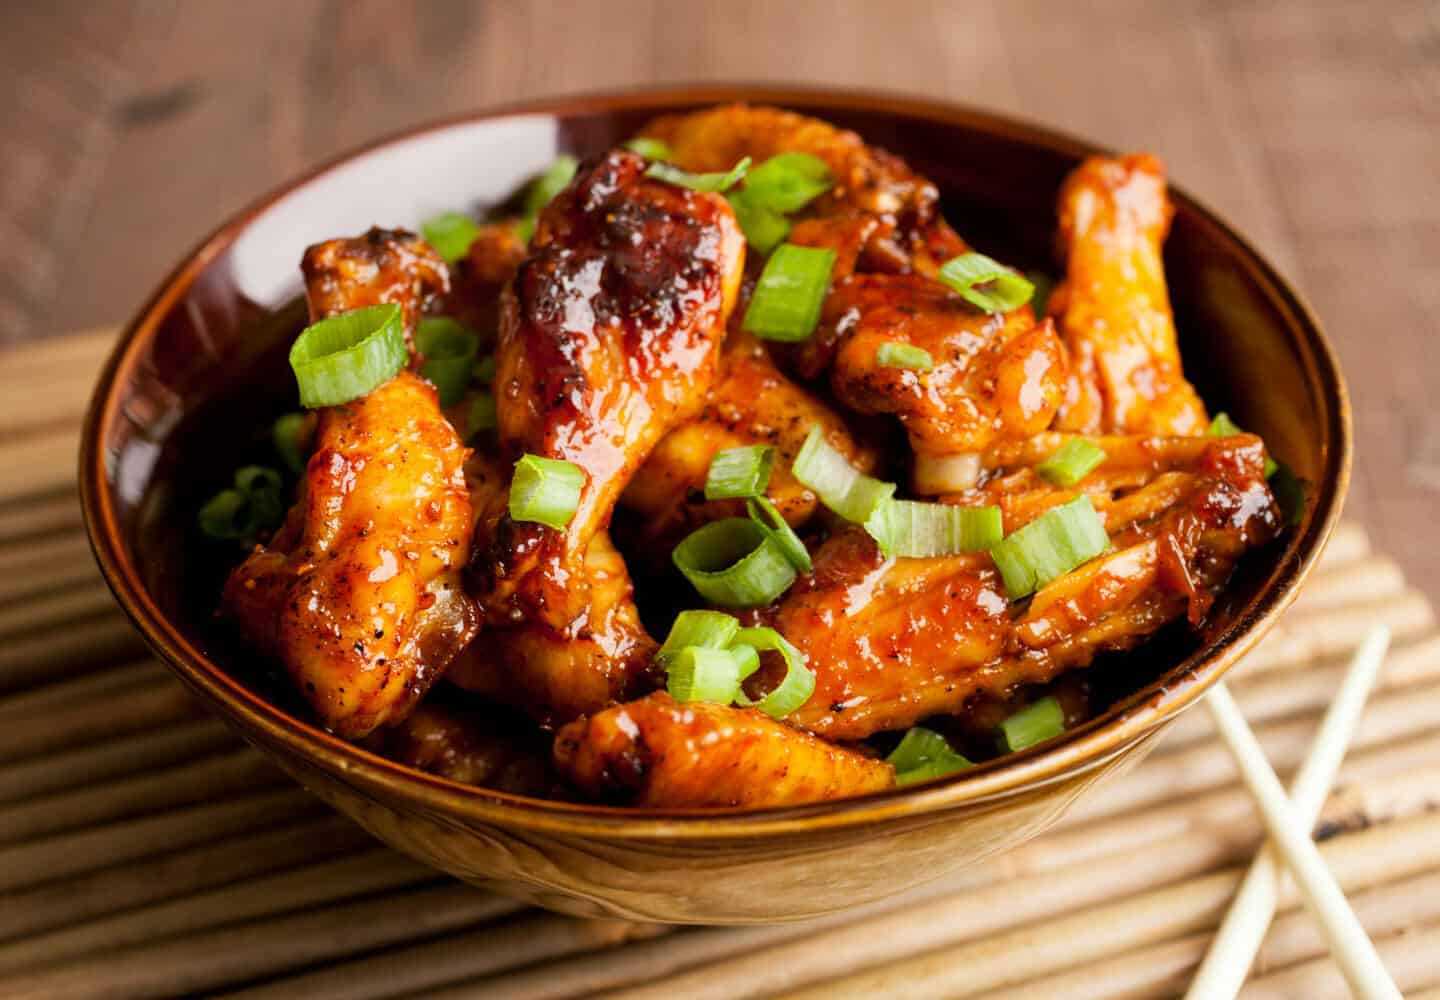 Sweet Korean Chicken Wings: These baked chicken wings have al the right flavors: Sweet, salty, sour, and spicy! You won't be able to stop with one! Perfect for game day! | macheesmo.com